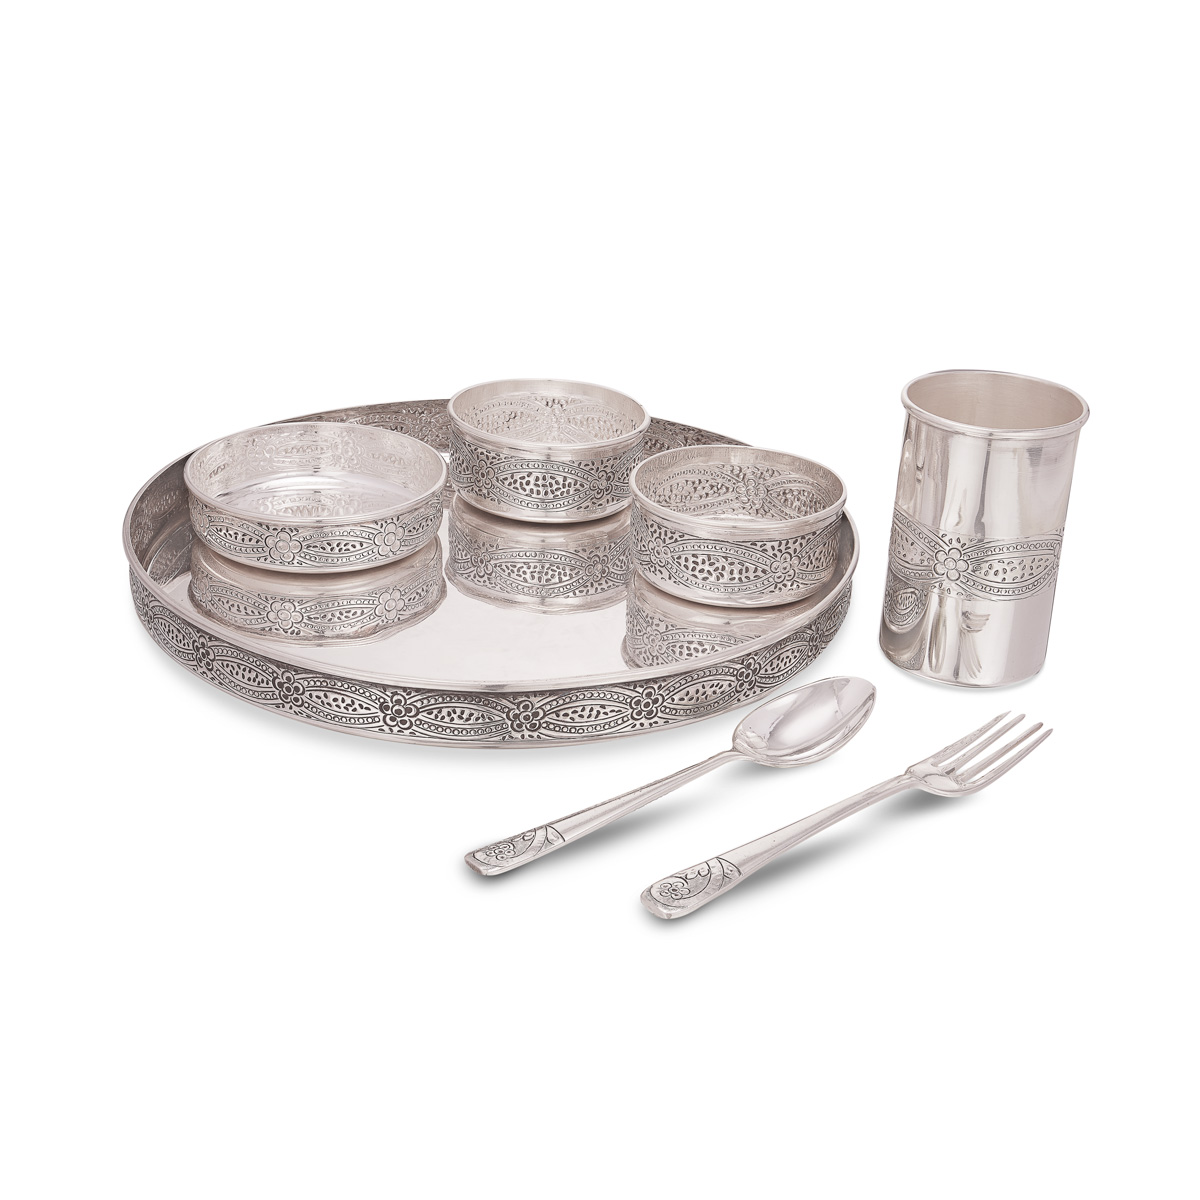 Antique Meal Plate Set In Silver